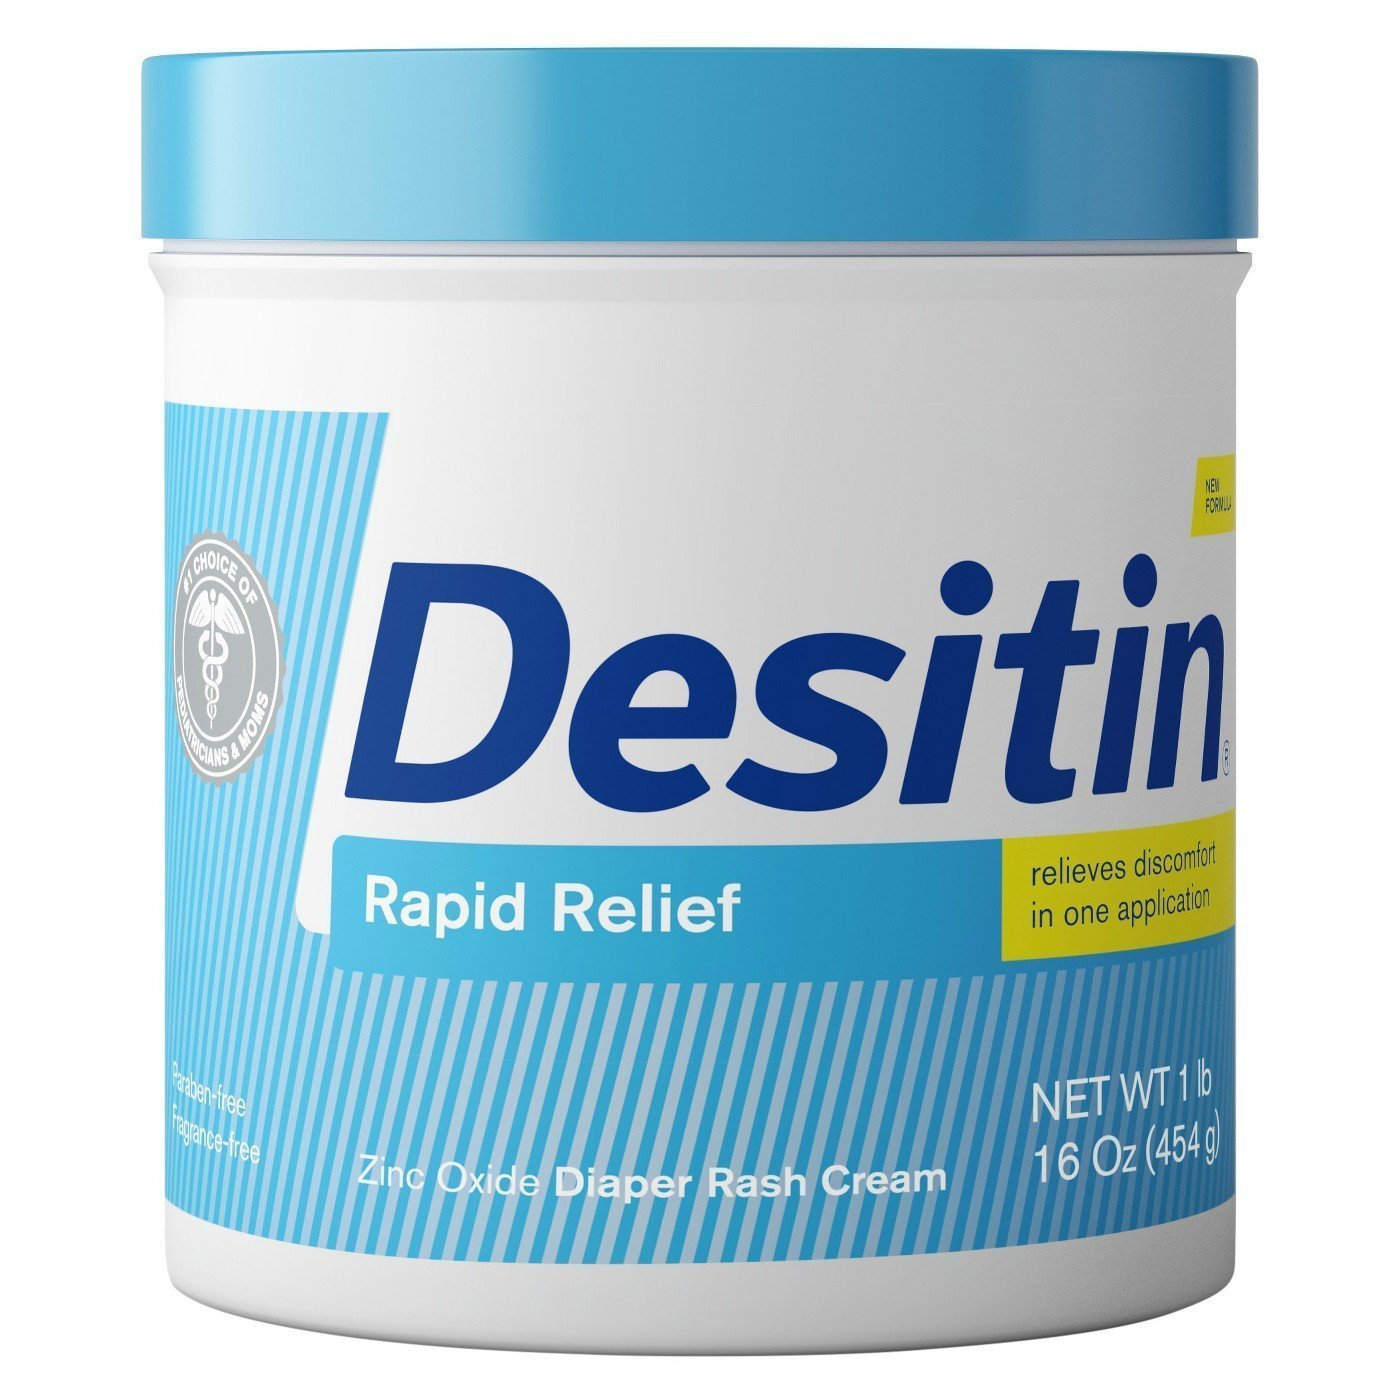 DESITIN Rapid Relief Diaper Rash Cream 16 oz (Pack of 3)